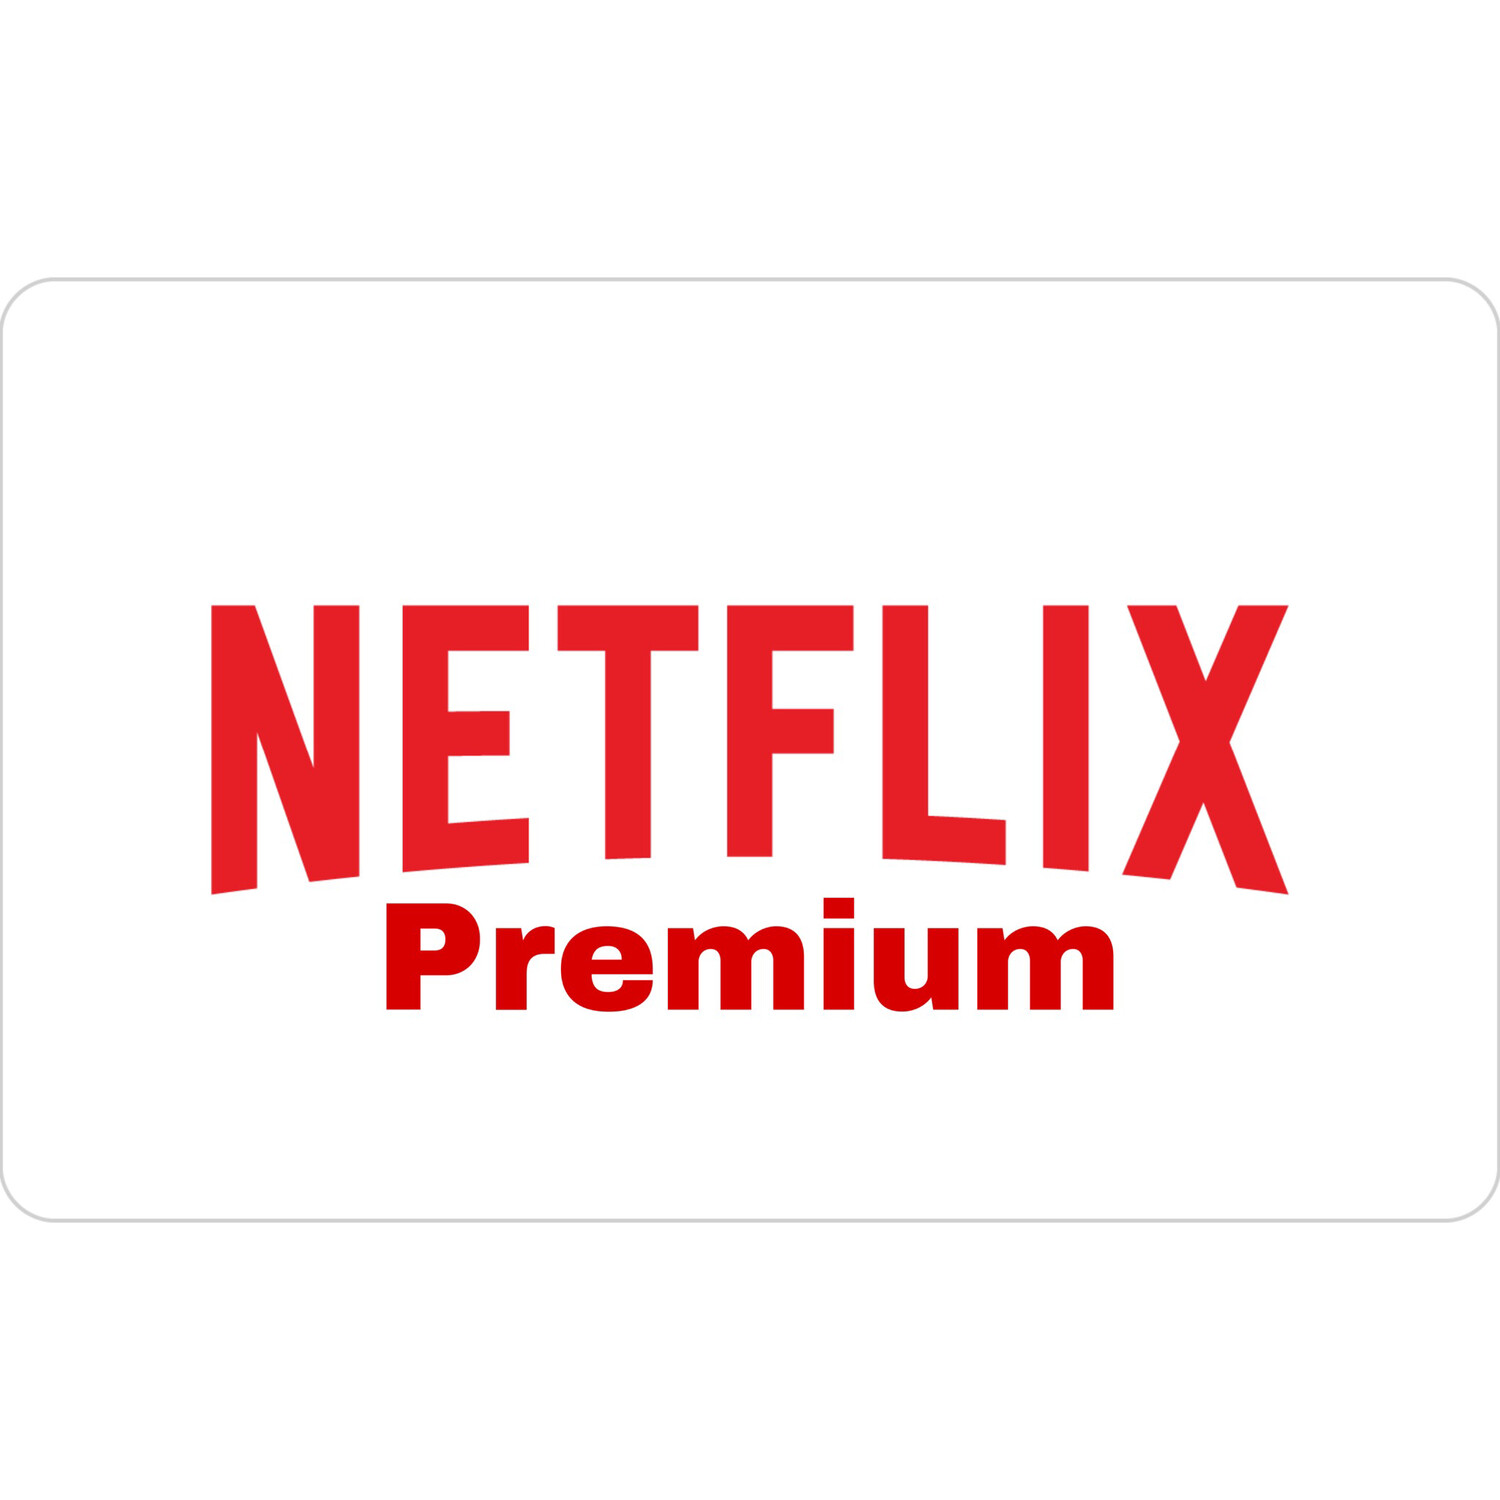 Netflix Premium 6 Bulan 5 Profil Private Account